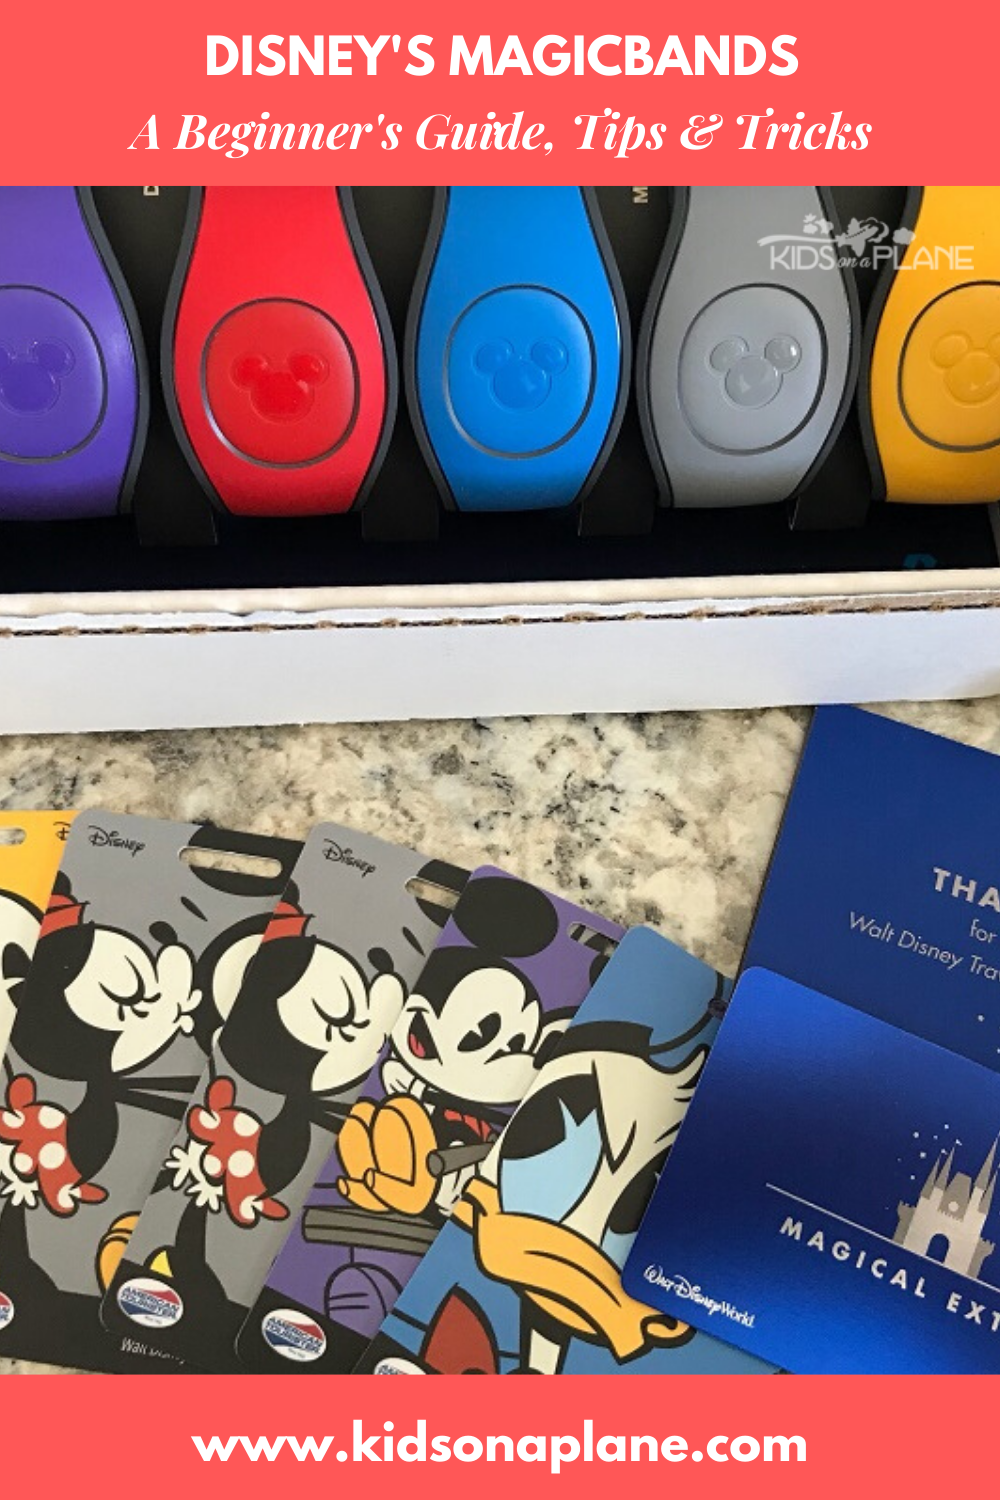 Disneys MagicBands - What Is It, How to Get Them, How to Use Them and More - A Complete Guide